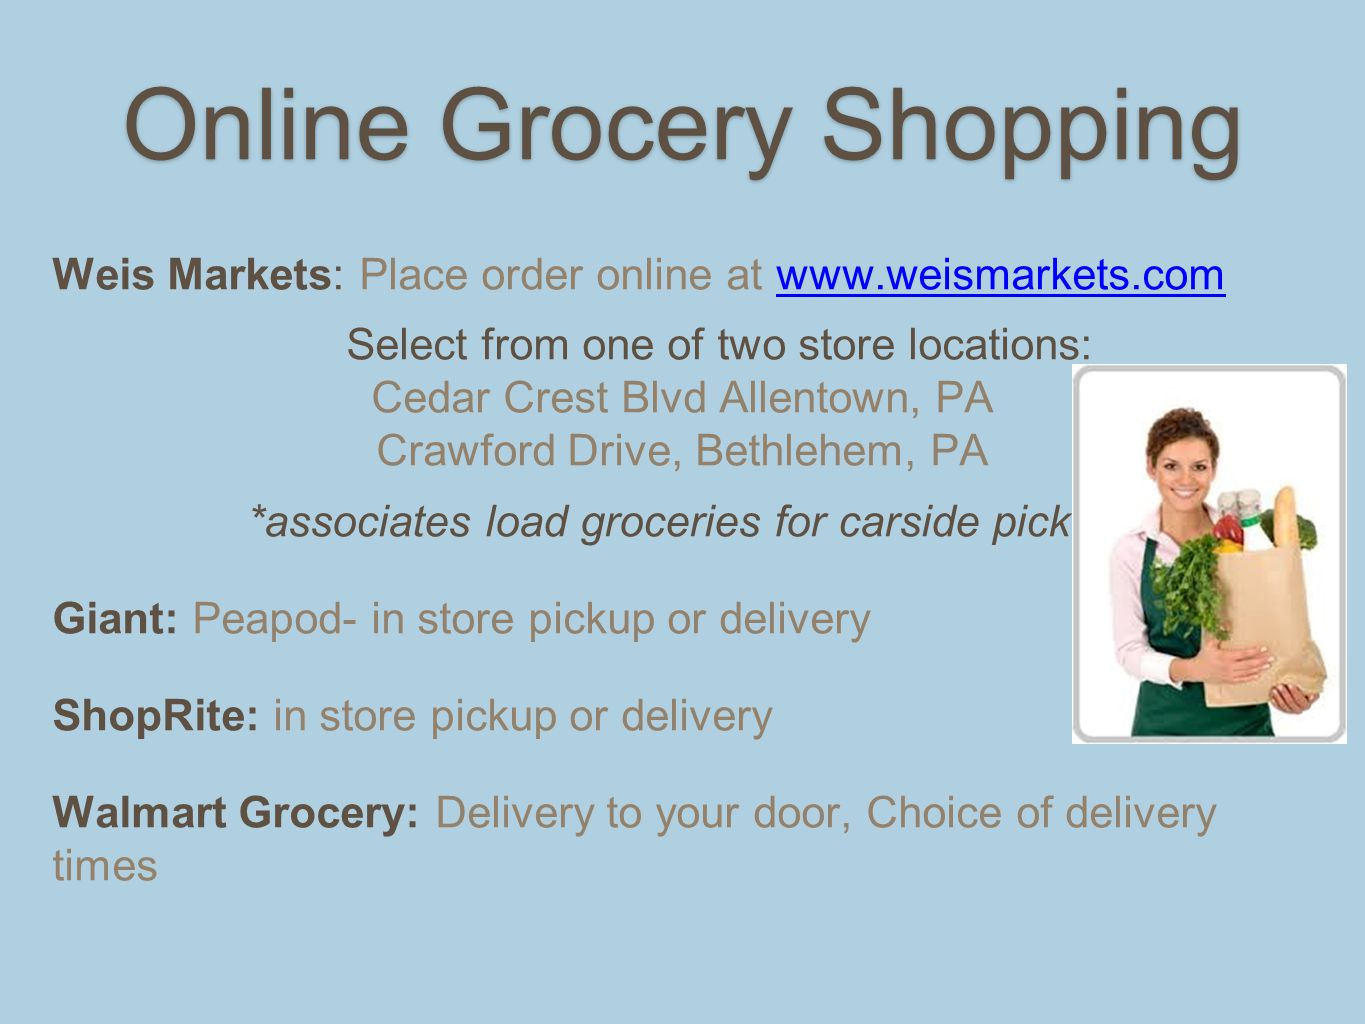 Online Grocery Shopping Weis Markets: Place order online at www.weismarkets.comwww.weismarkets.com Select from one of two store locations: Cedar Crest Blvd Allentown, PA Crawford Drive, Bethlehem, PA *associates load groceries for carside pickup Giant: Peapod- in store pickup or delivery ShopRite: in store pickup or delivery Walmart Grocery: Delivery to your door, Choice of delivery times